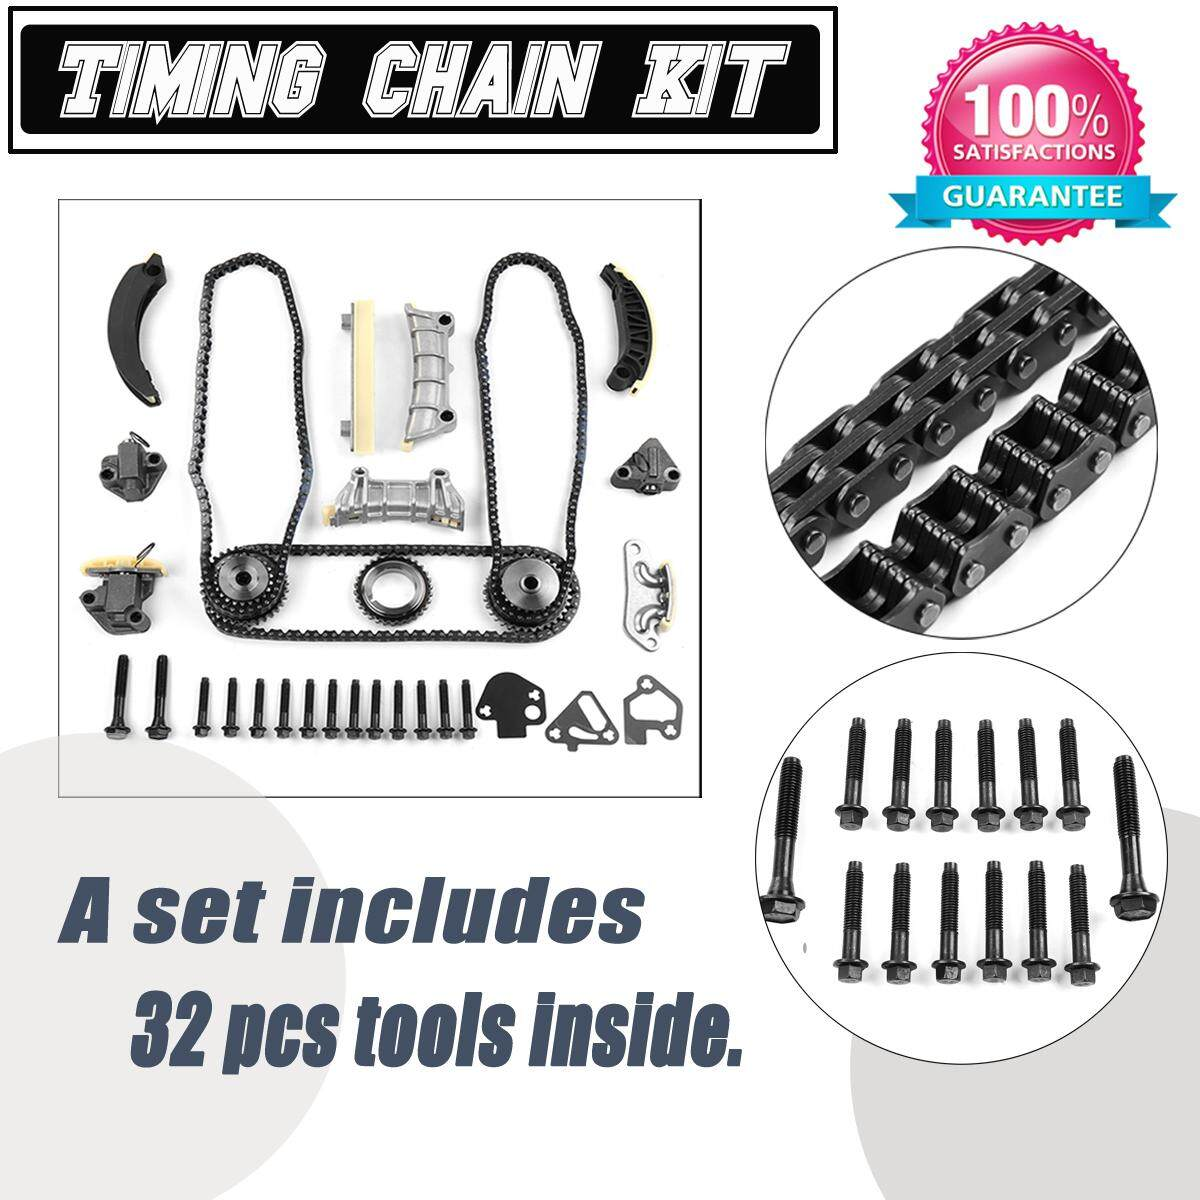 Timing Chain Kit For GM Holden Commodore VZ VE Alloytec LY7 LLT 3 6L V6  w/Gears